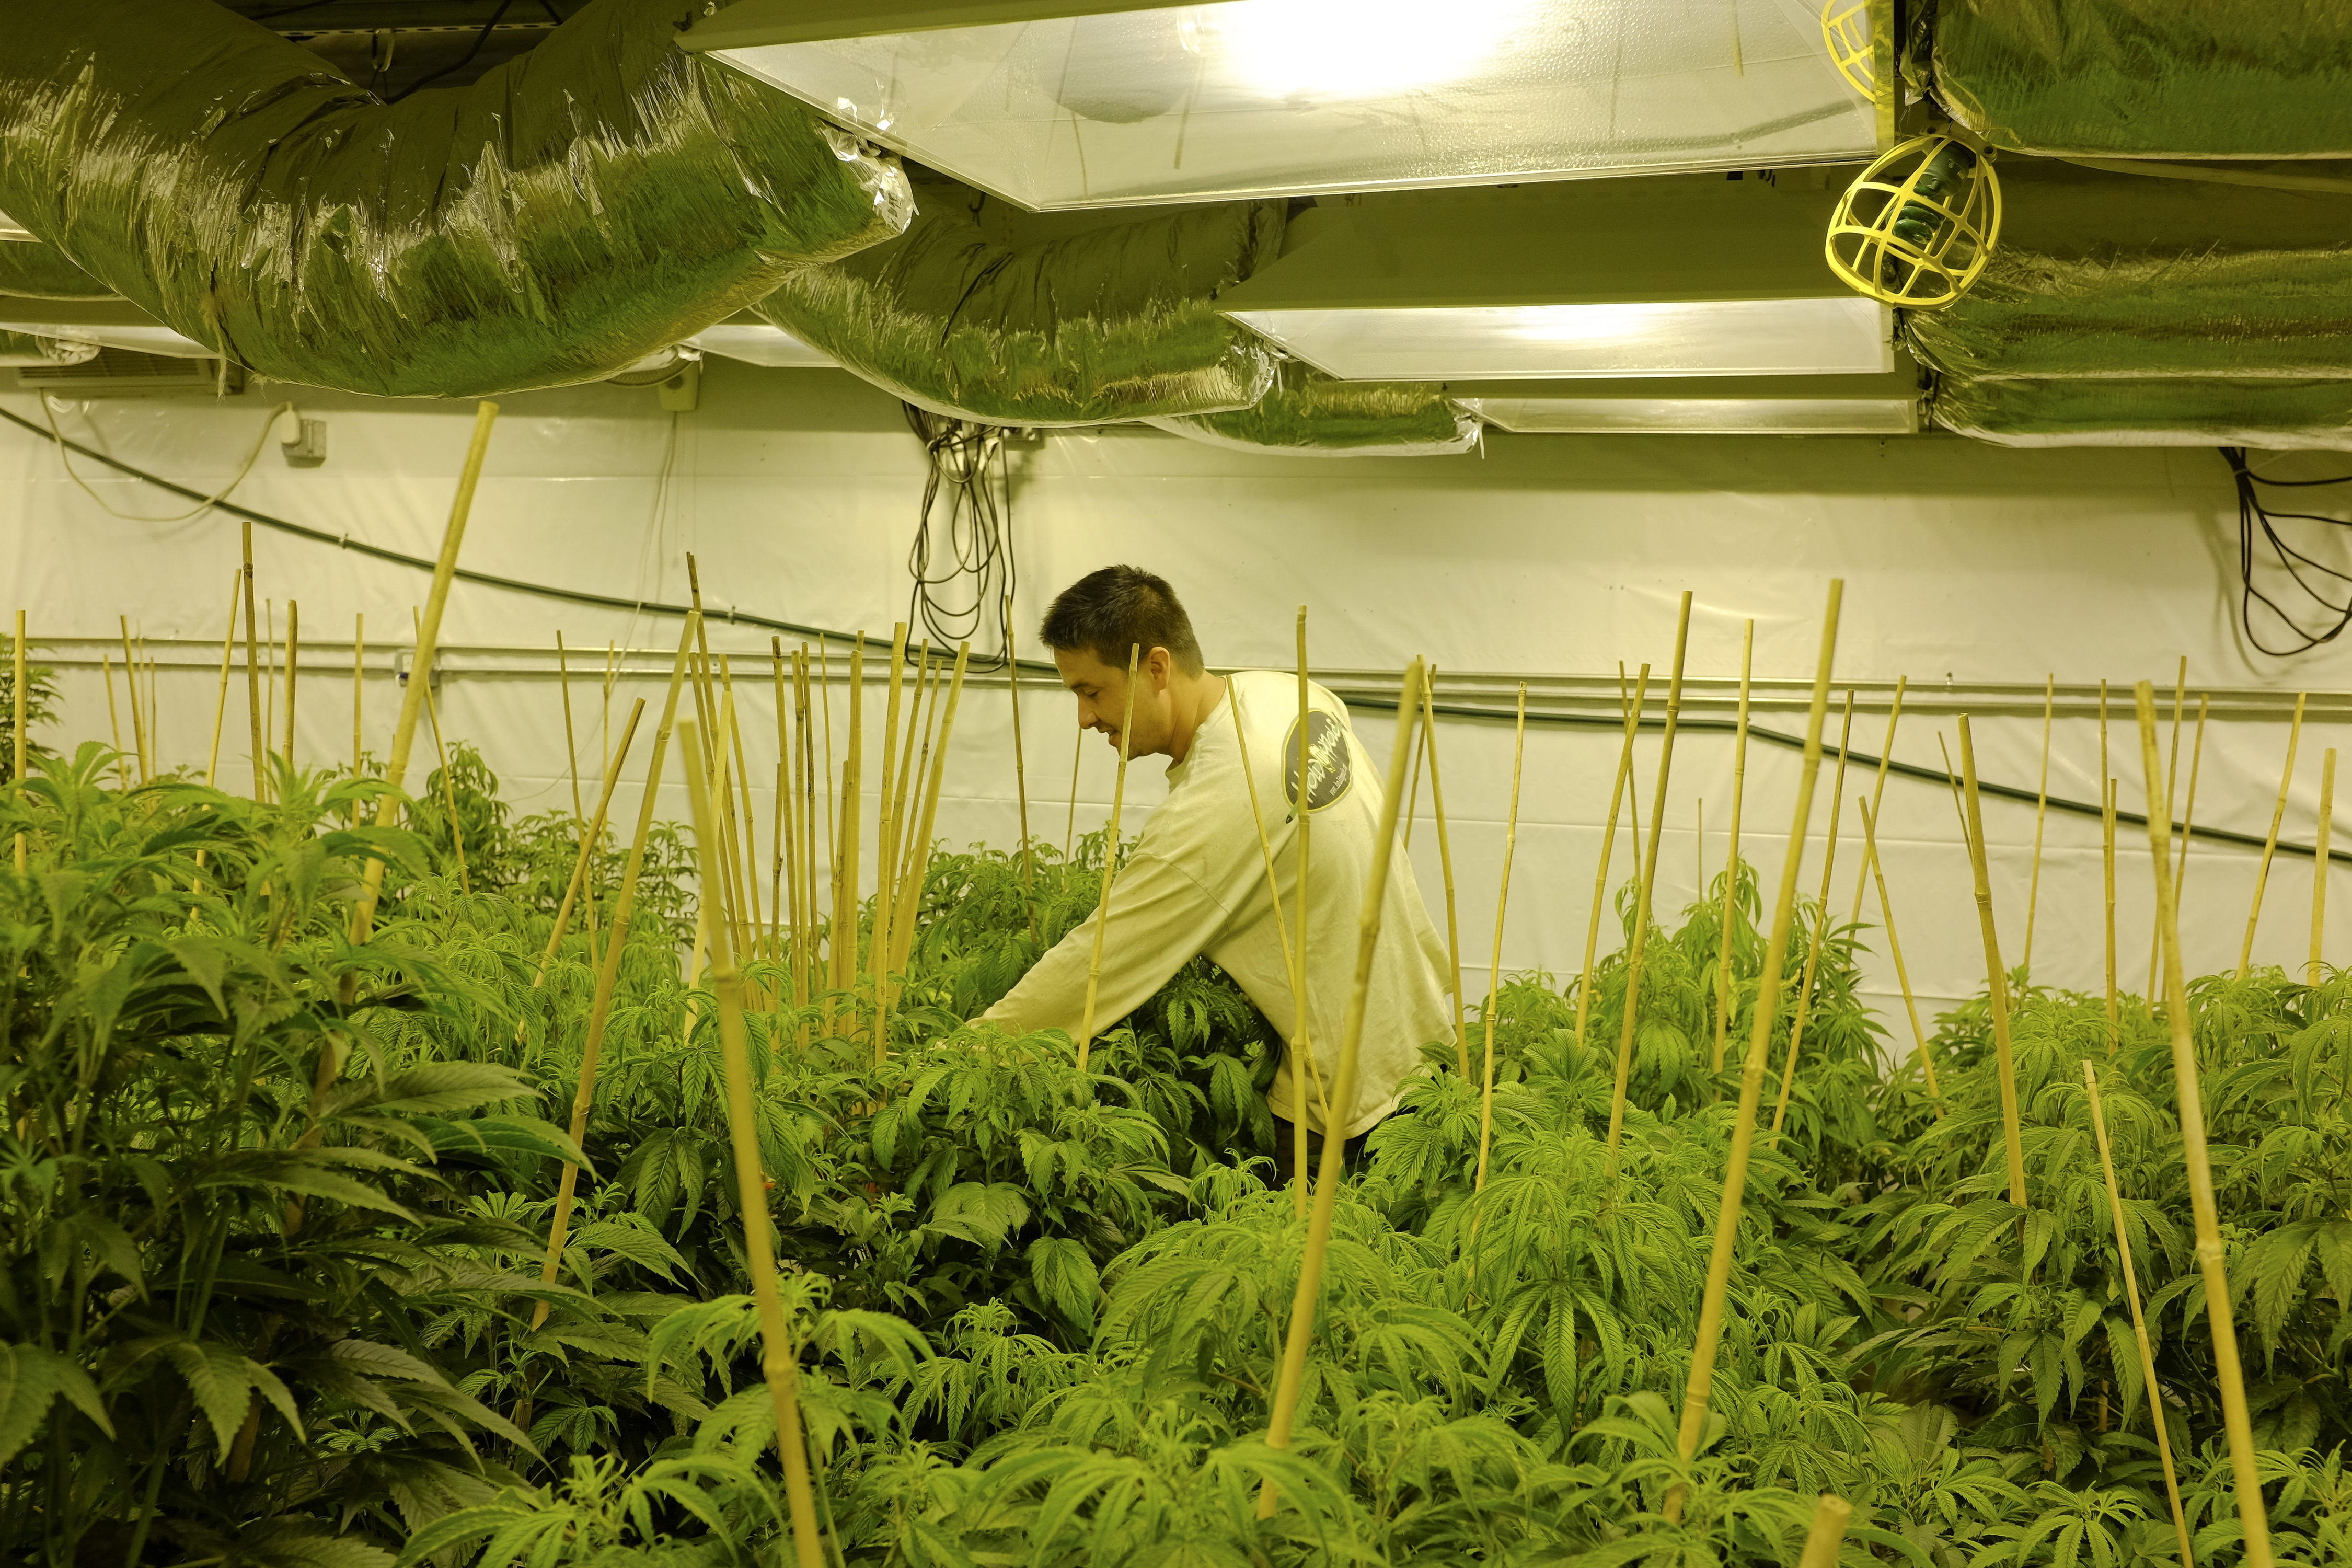 Restrictions placed on medical marijuana in New York mean it will be some time before growing operations like this one in Colorado set up operations in New York. (New York Times photo)